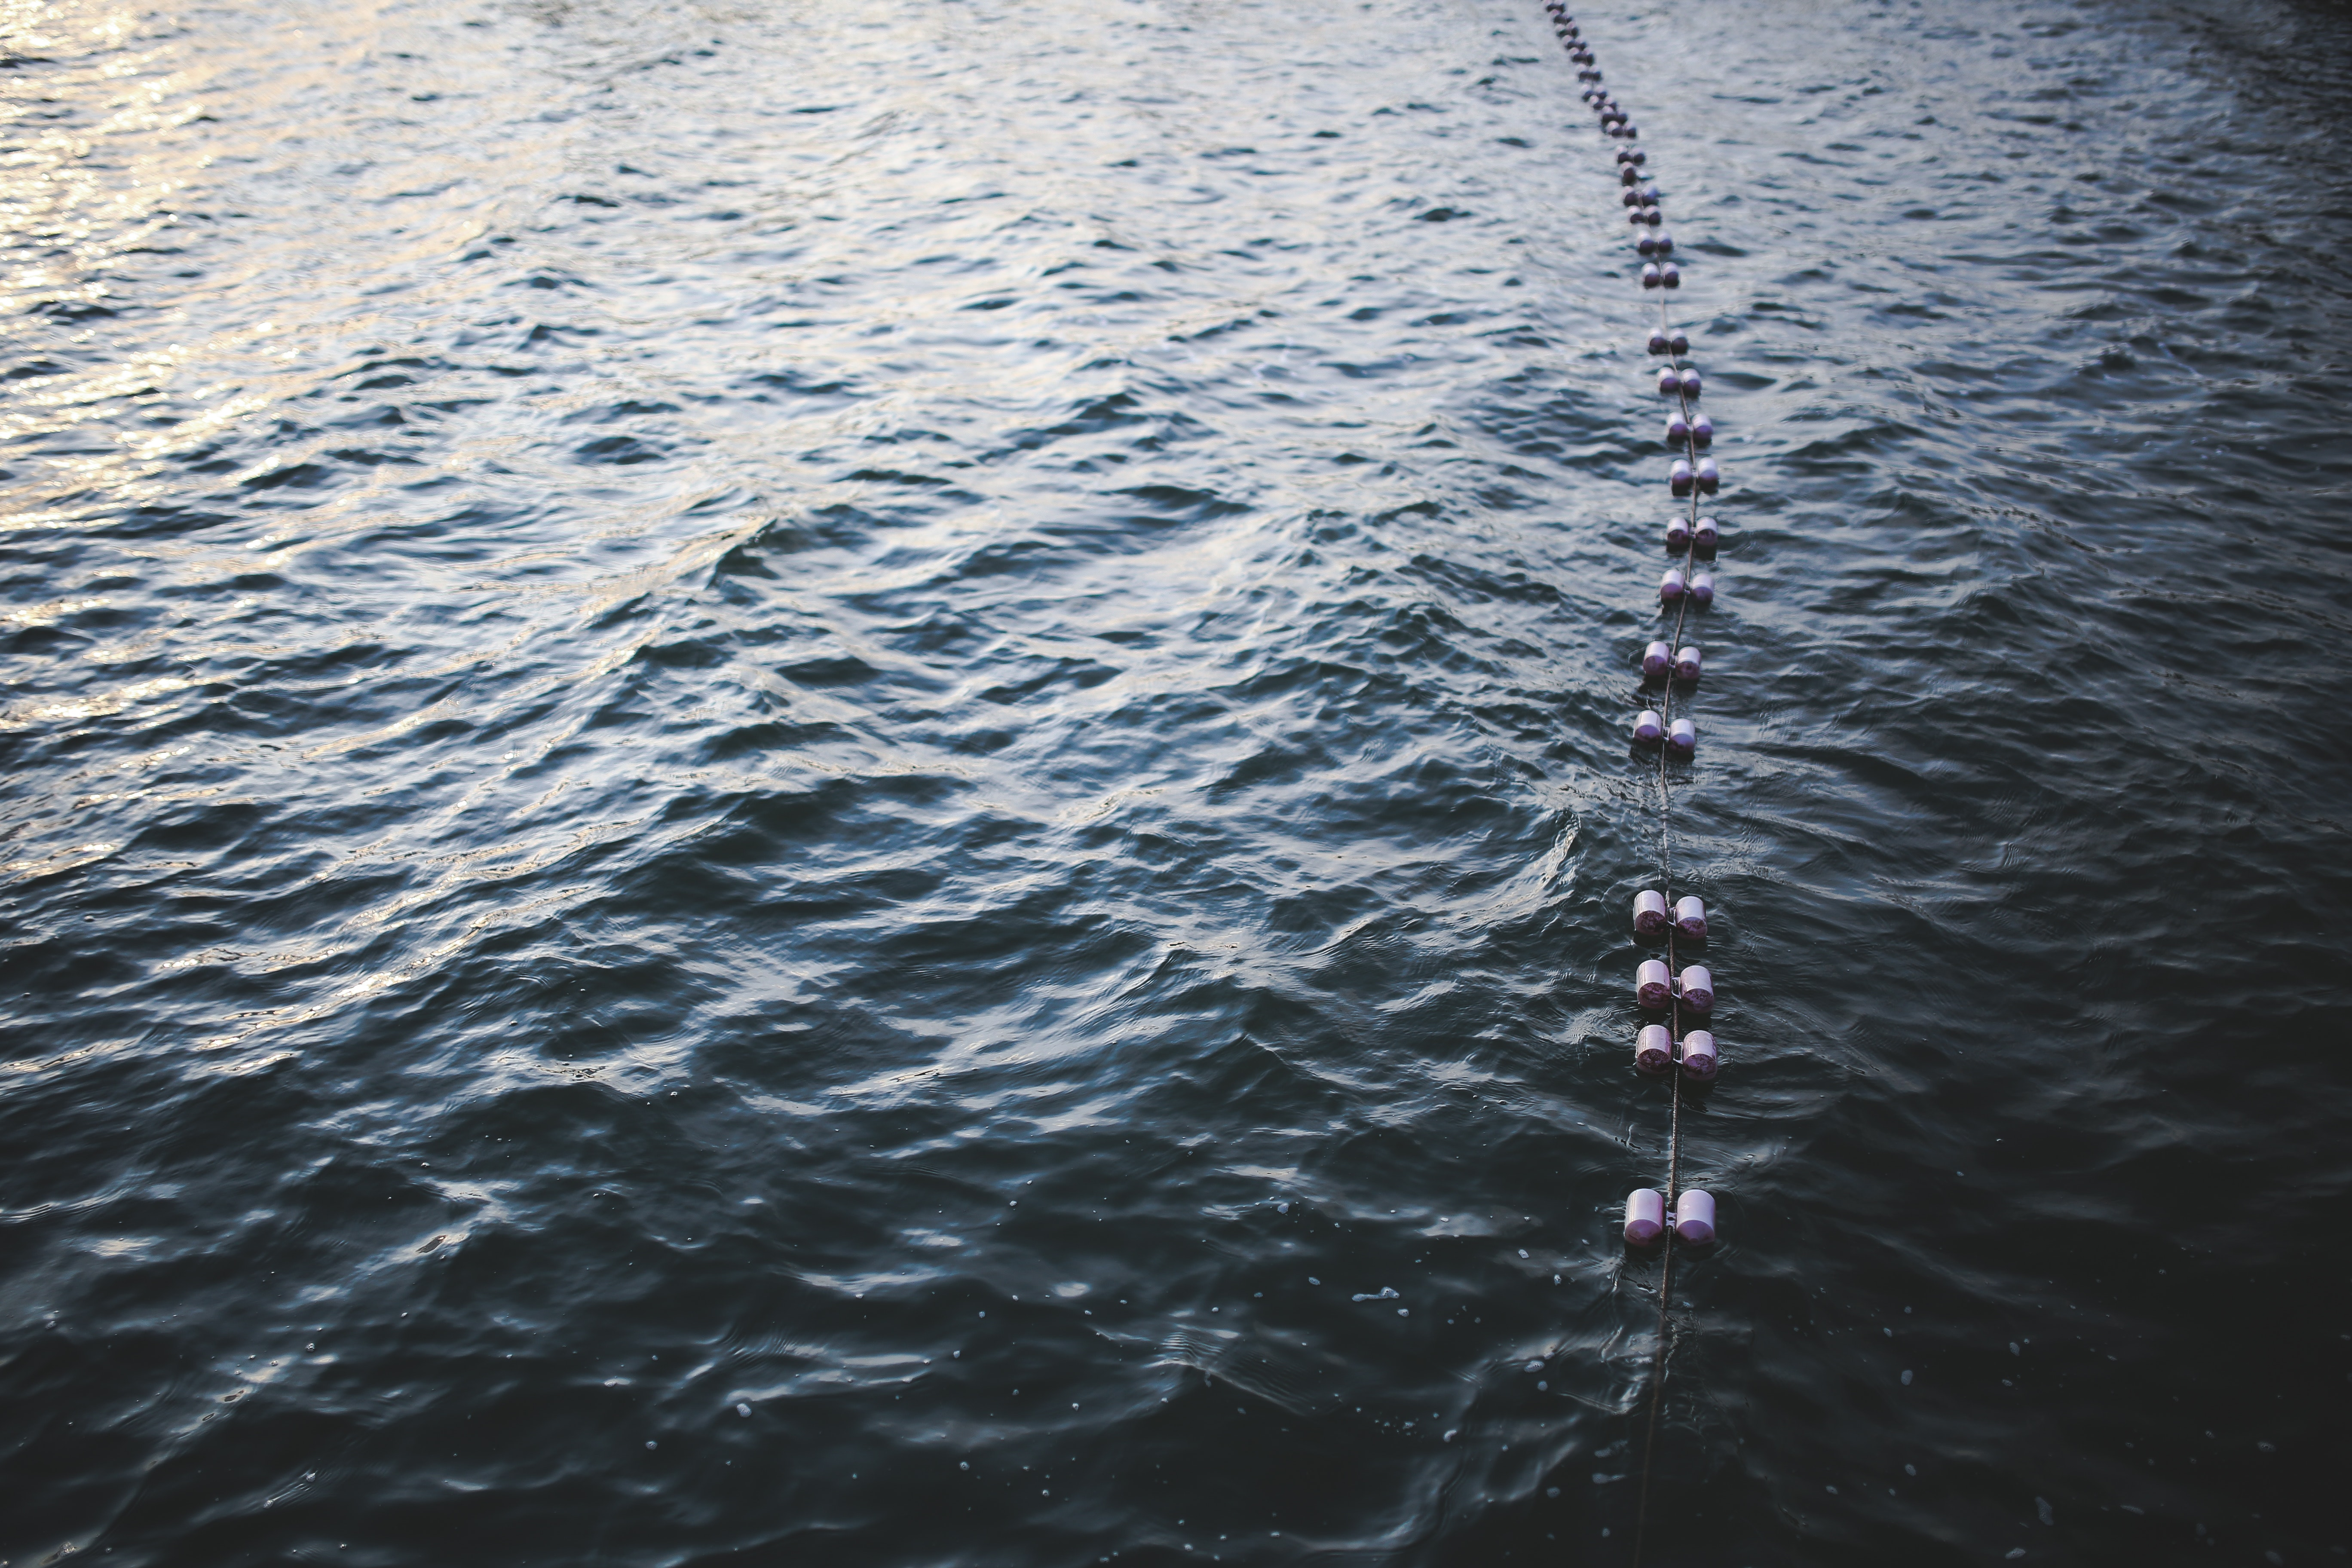 Buoys floating on top of the water, Reflection, Wave, Water, Vacation, HQ Photo